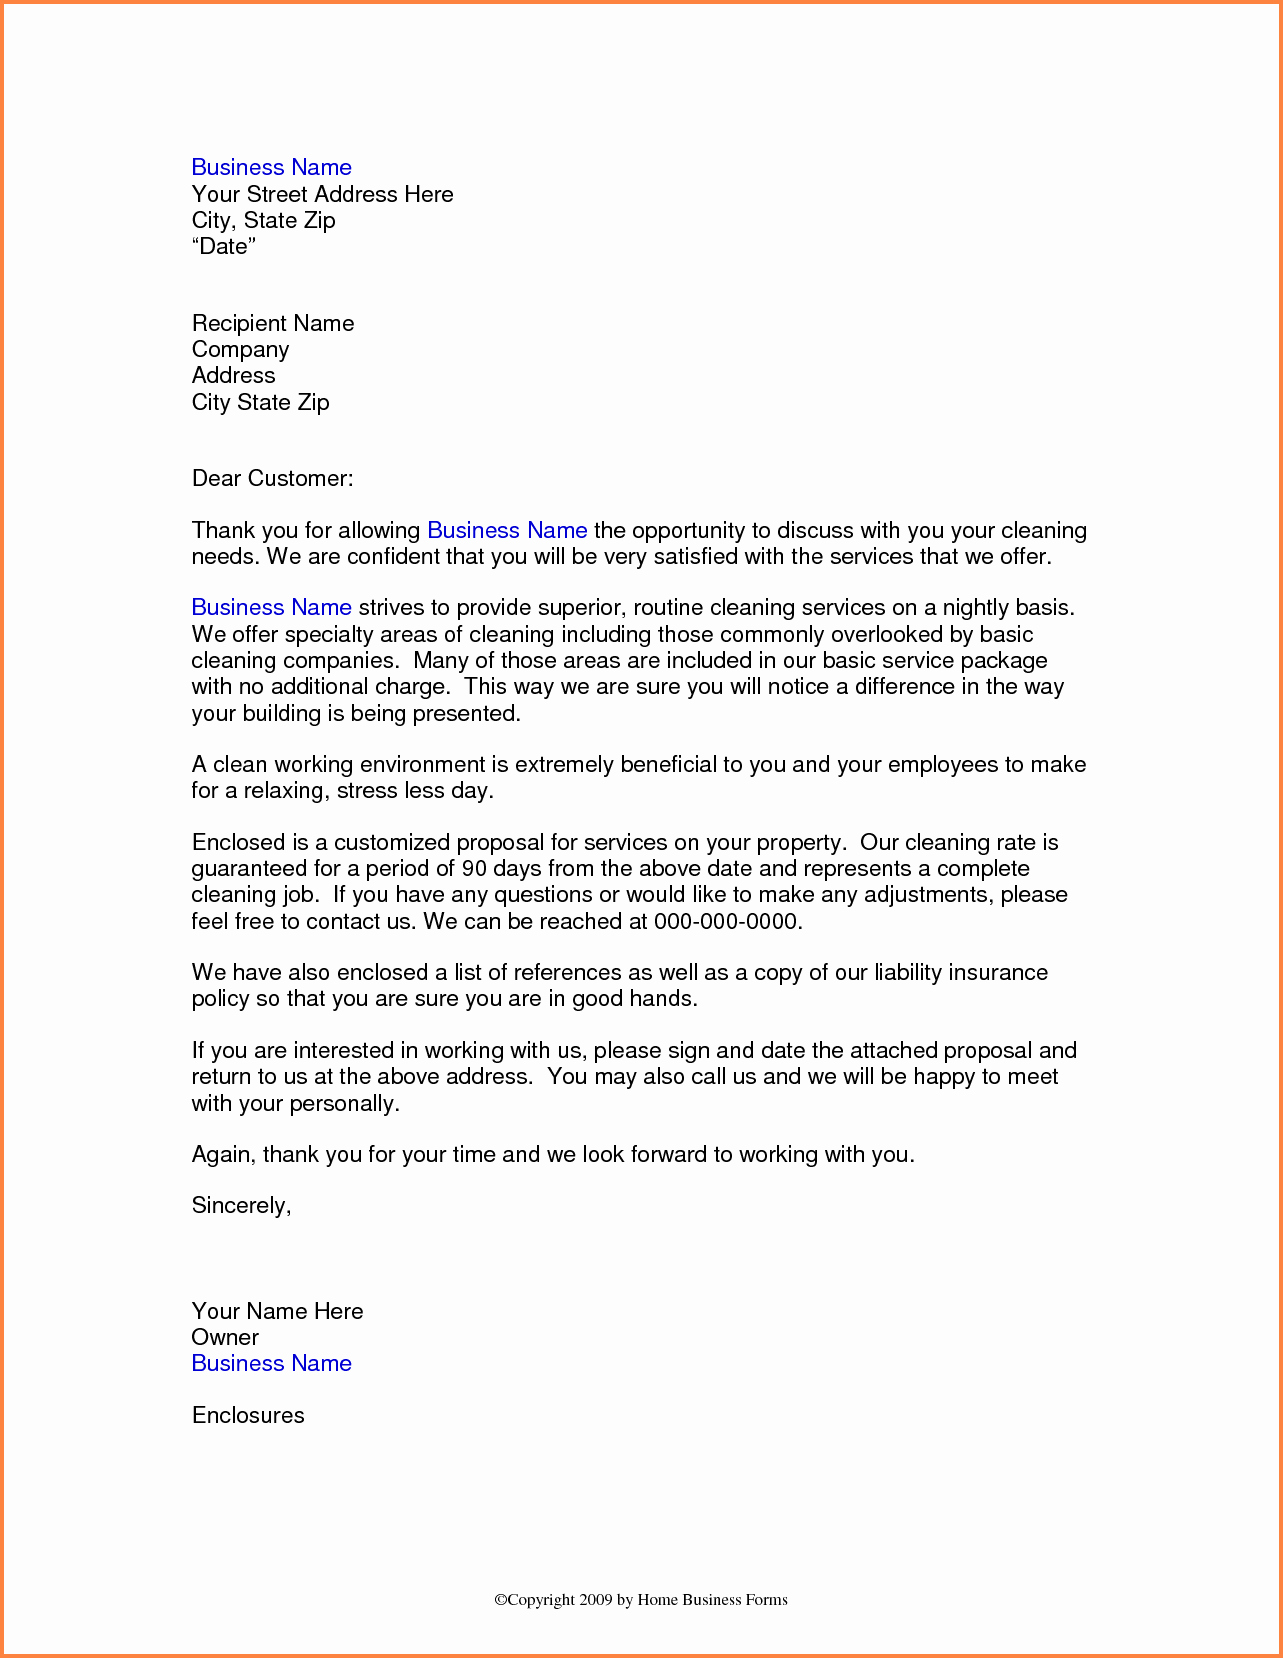 Cleaning Proposal Template Pdf Inspirational 13 How to Write A Business Proposal for A Cleaning